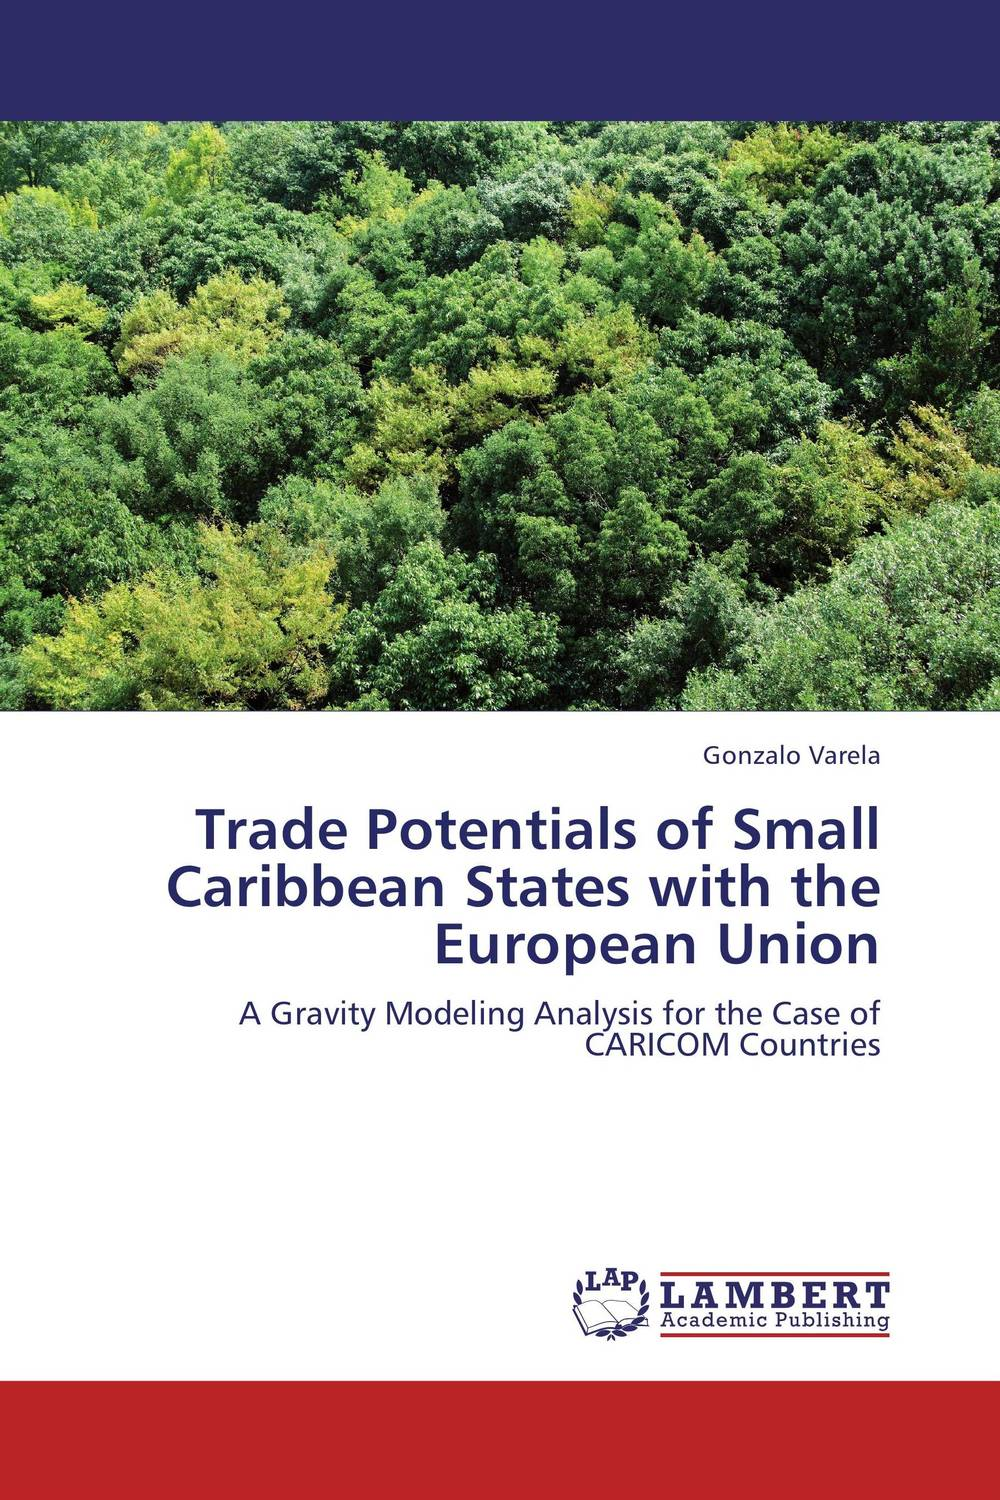 Trade Potentials of Small Caribbean States with the European Union development of the third european union maritime safety package